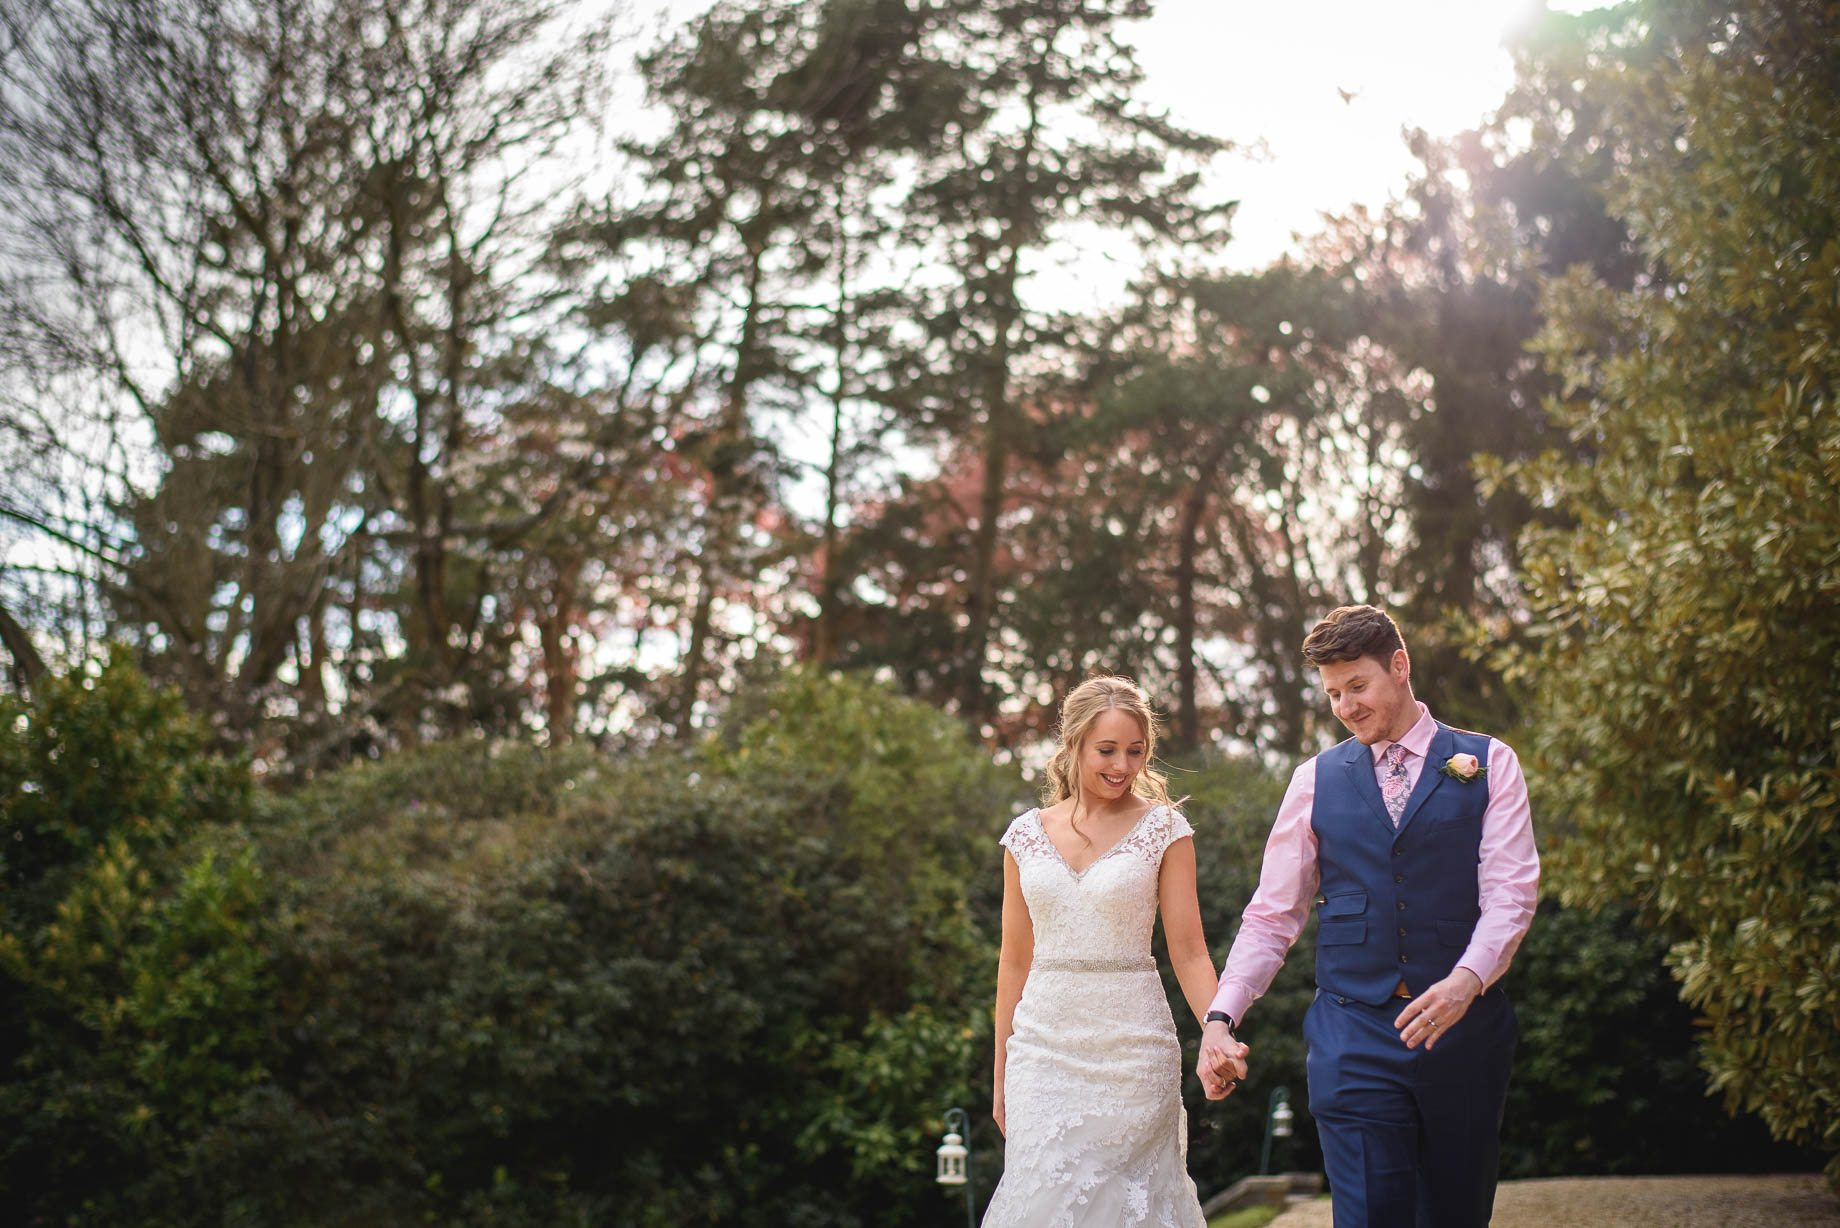 Hampshire wedding photography by Guy Collier - Emily and Tom (136 of 164)